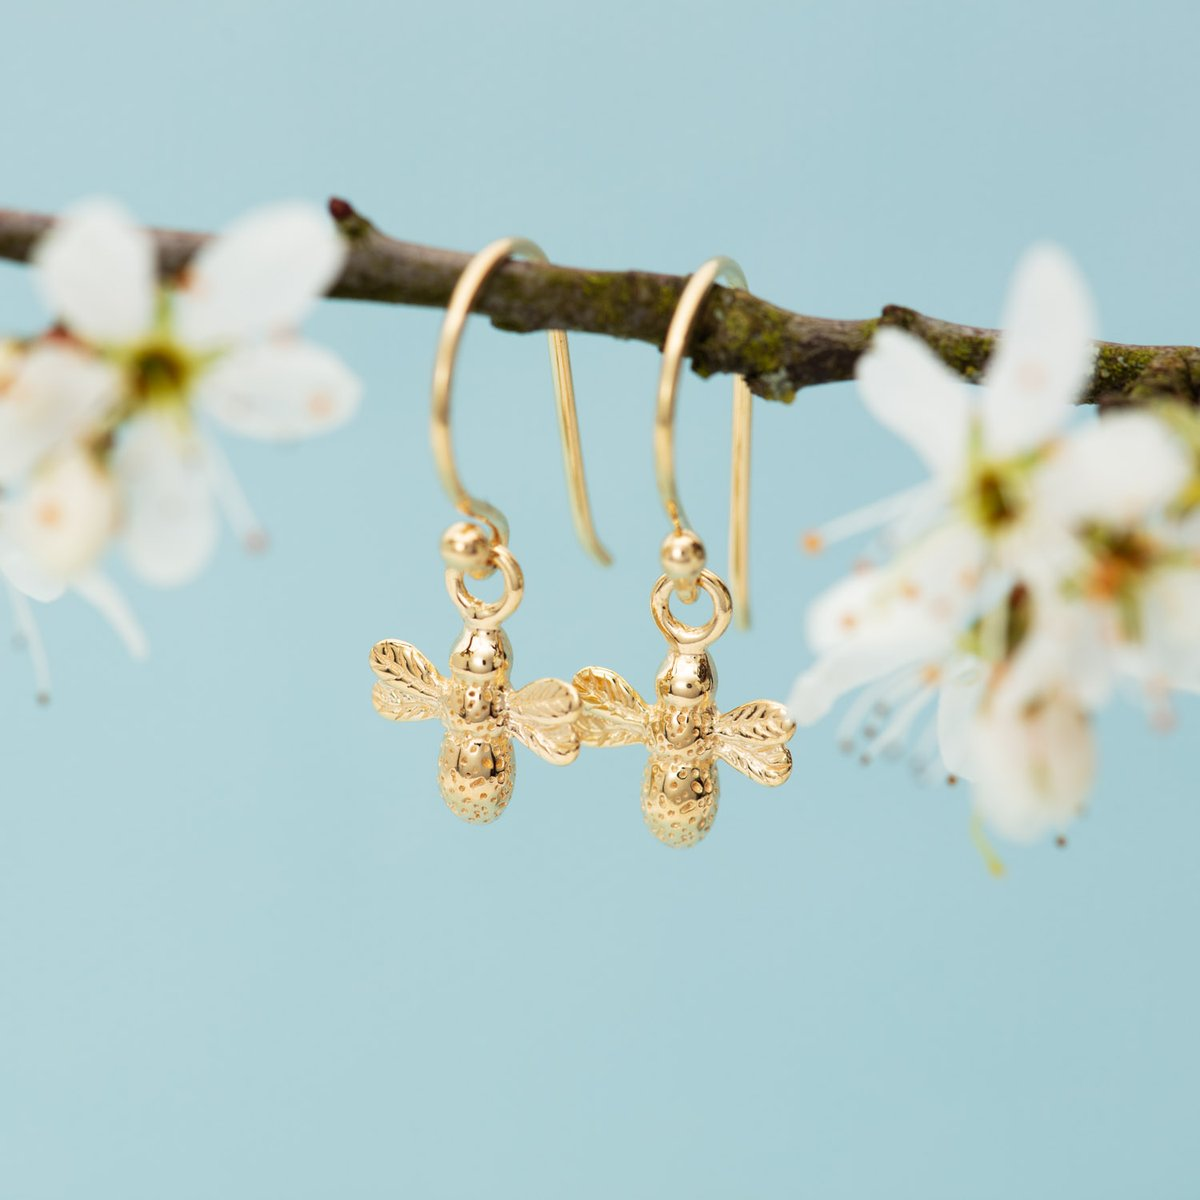 You can't lockdown Spring - daisies are springing up, the trees are greening and the blossom and #bees are out.  Why not send a personalised gift and make someone's day? We're open and sending #recycledsilver, hygenically packaged jewellery x #supportsmallbusiness #springpic.twitter.com/KG6bUvuPse